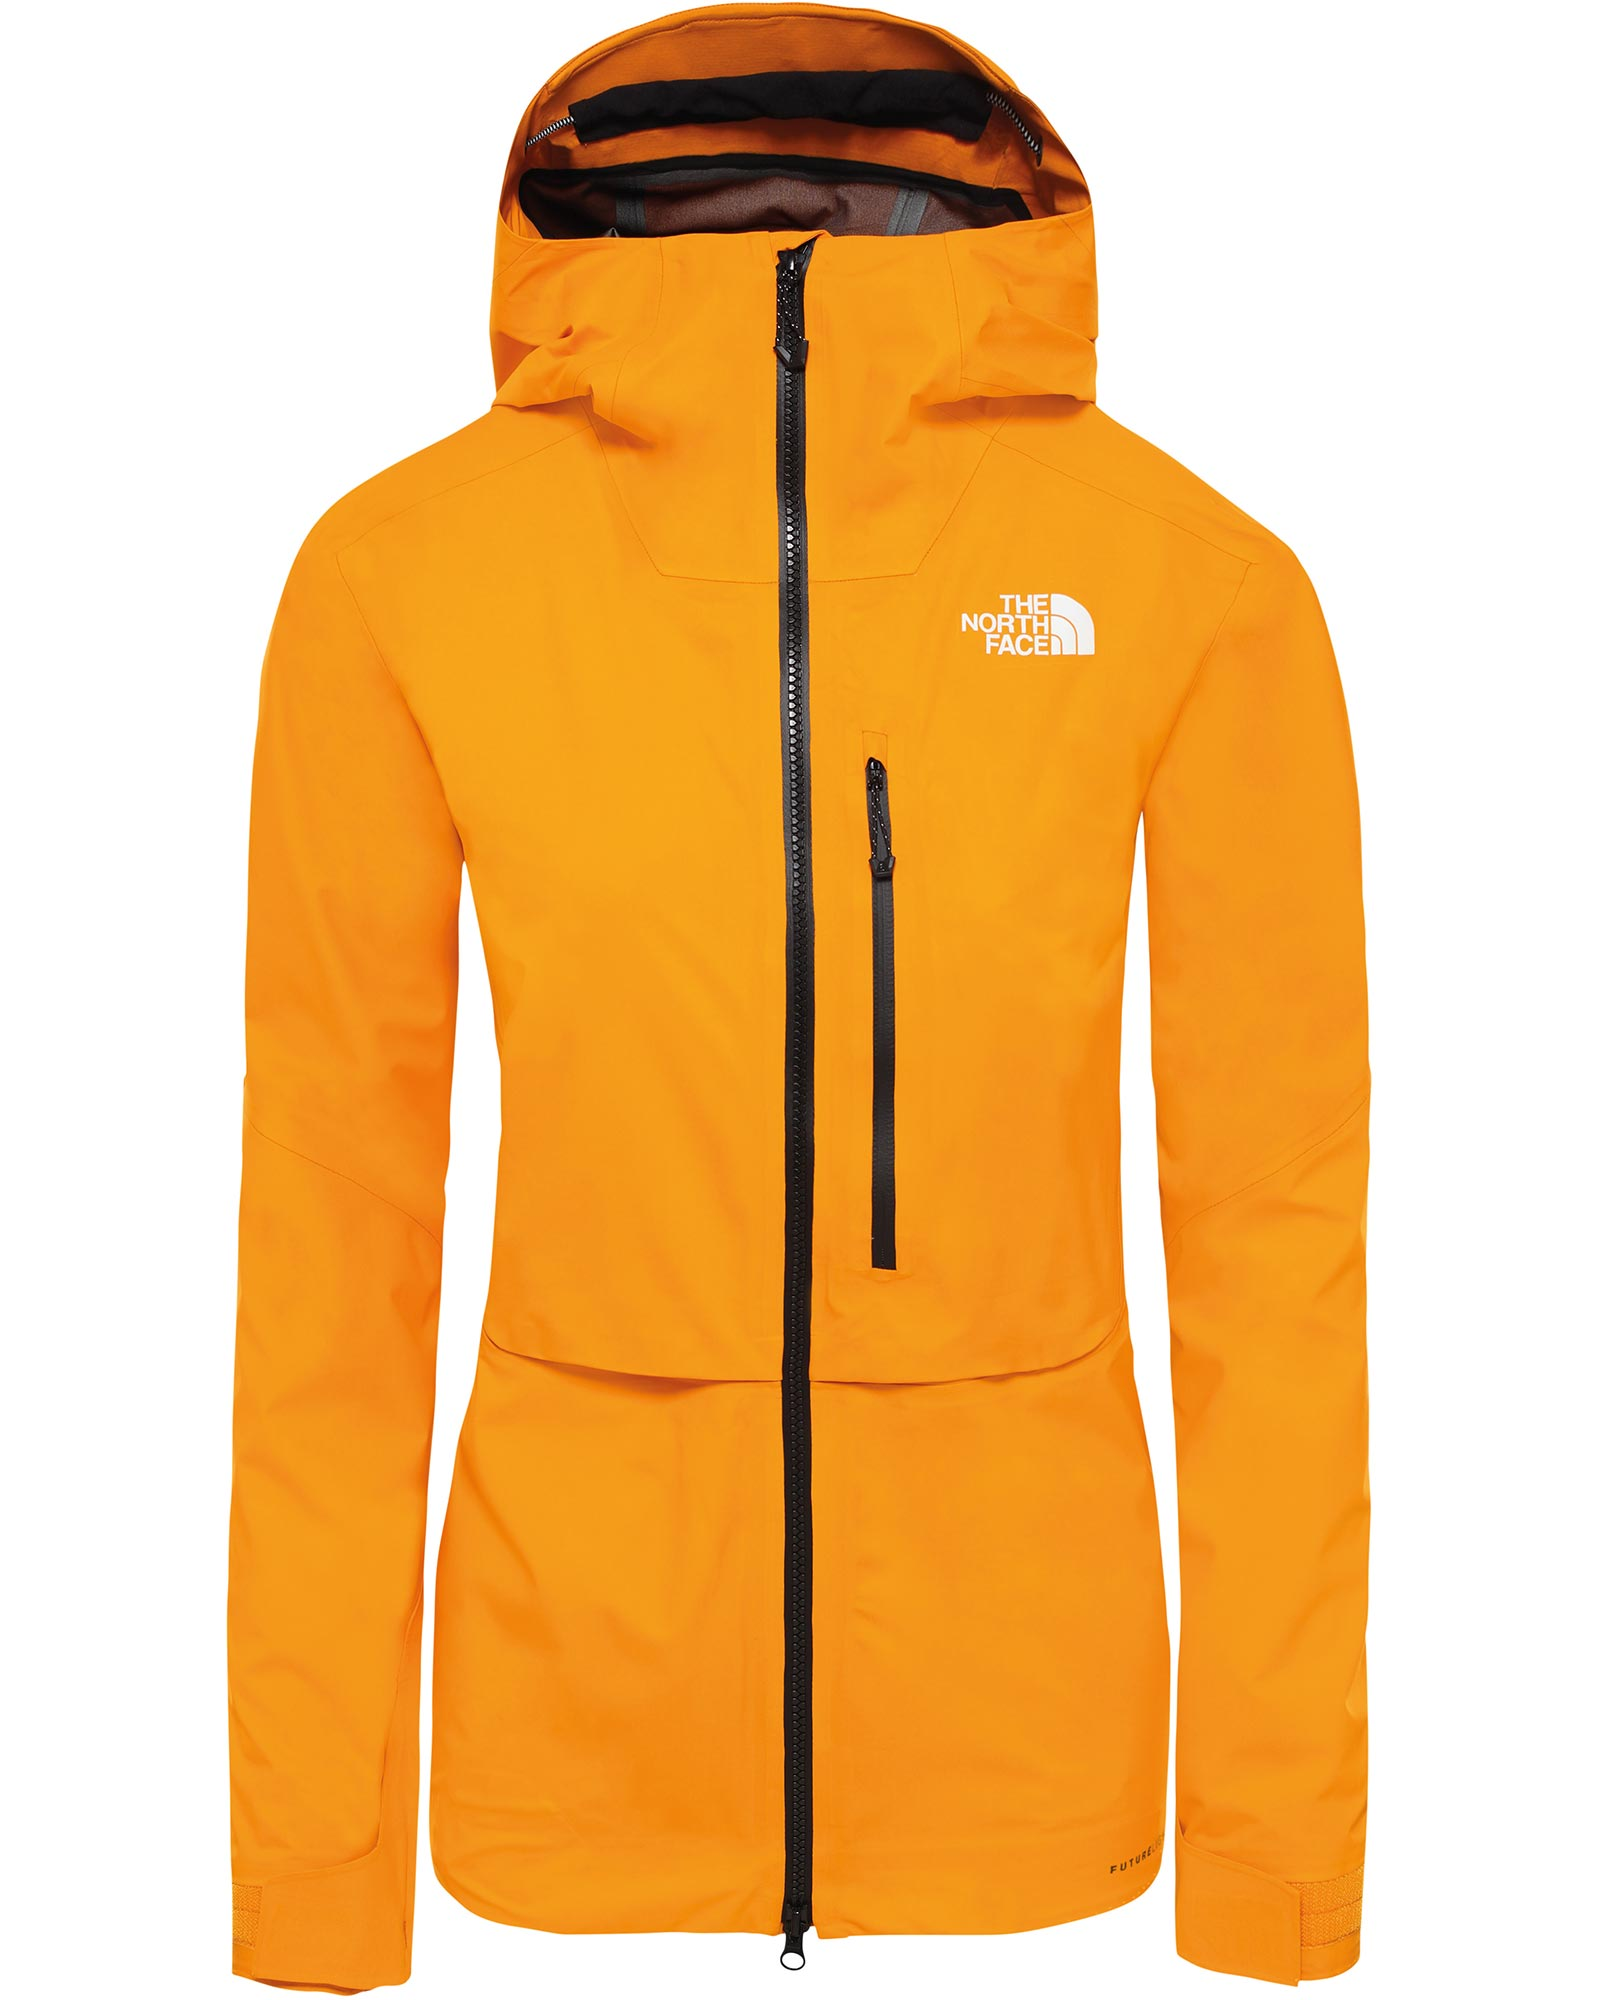 The North Face Women's Summit Series L5 LT FUTURELIGHT Jacket Knockout Orange 0